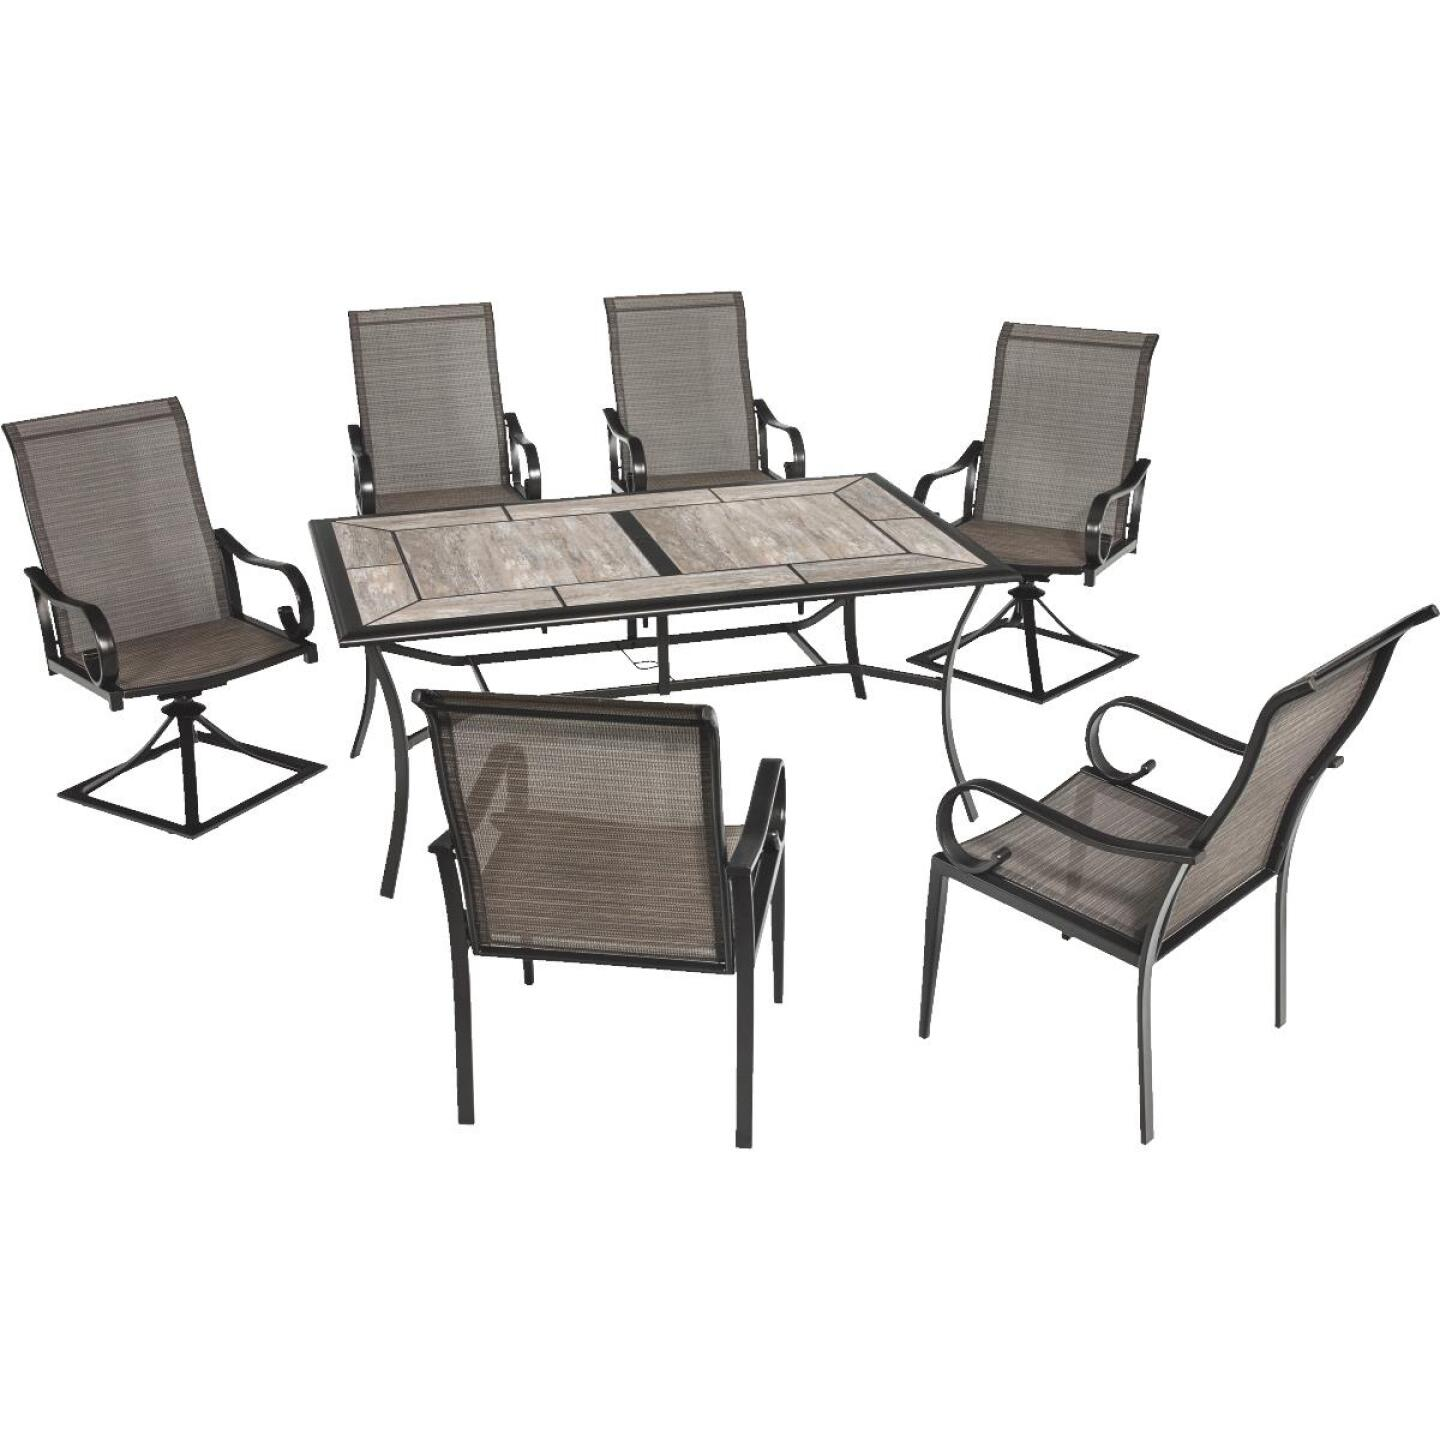 Outdoor Expressions Berkshire 7-Piece Dining Set Image 337